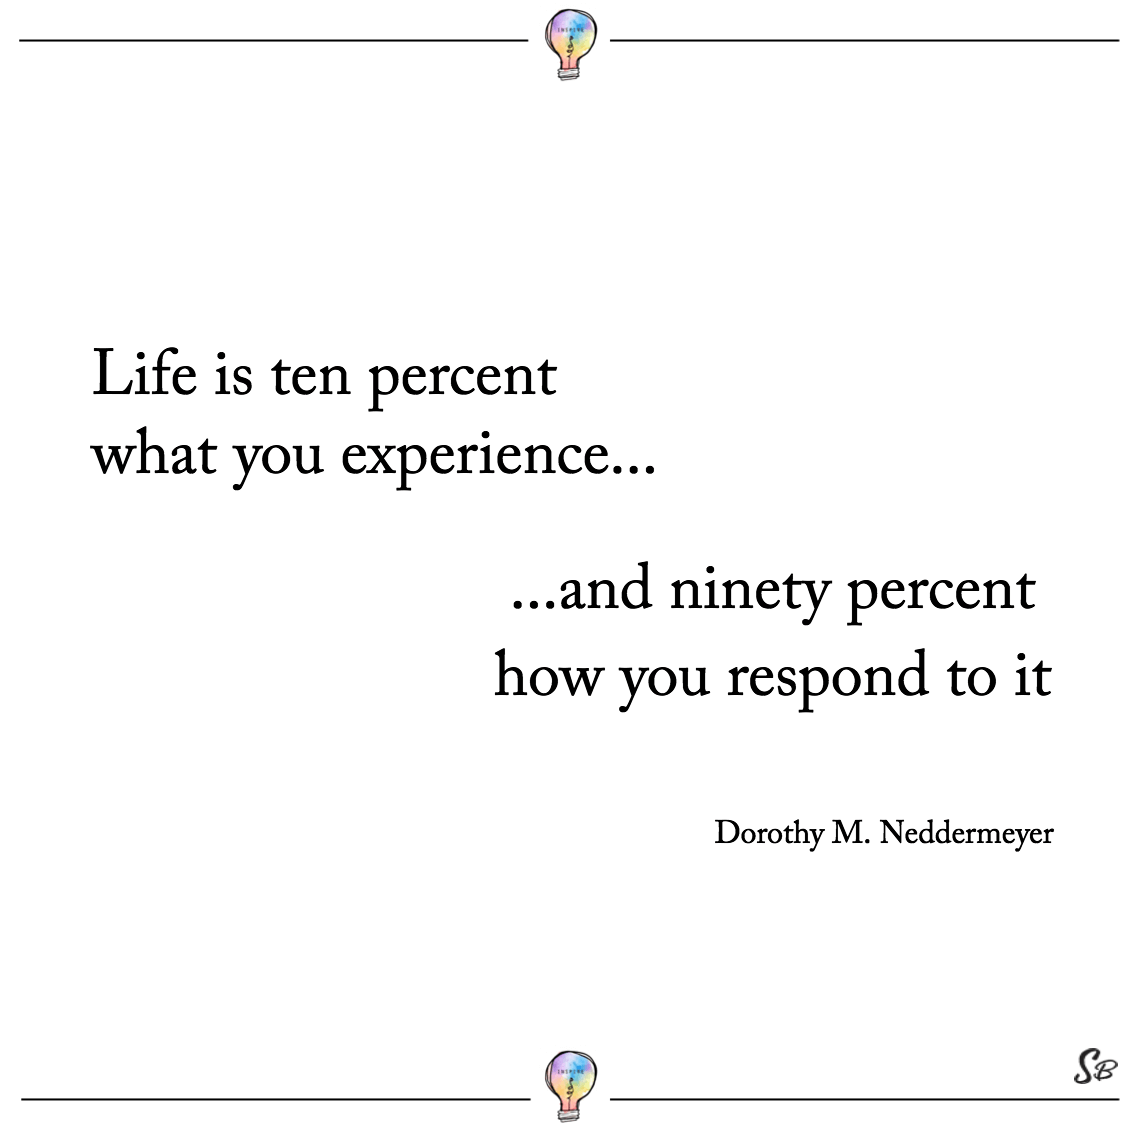 Life is ten percent what you experience and ninety percent how you respond to it. dorothy m. neddermeyer confidence inspiring quotes